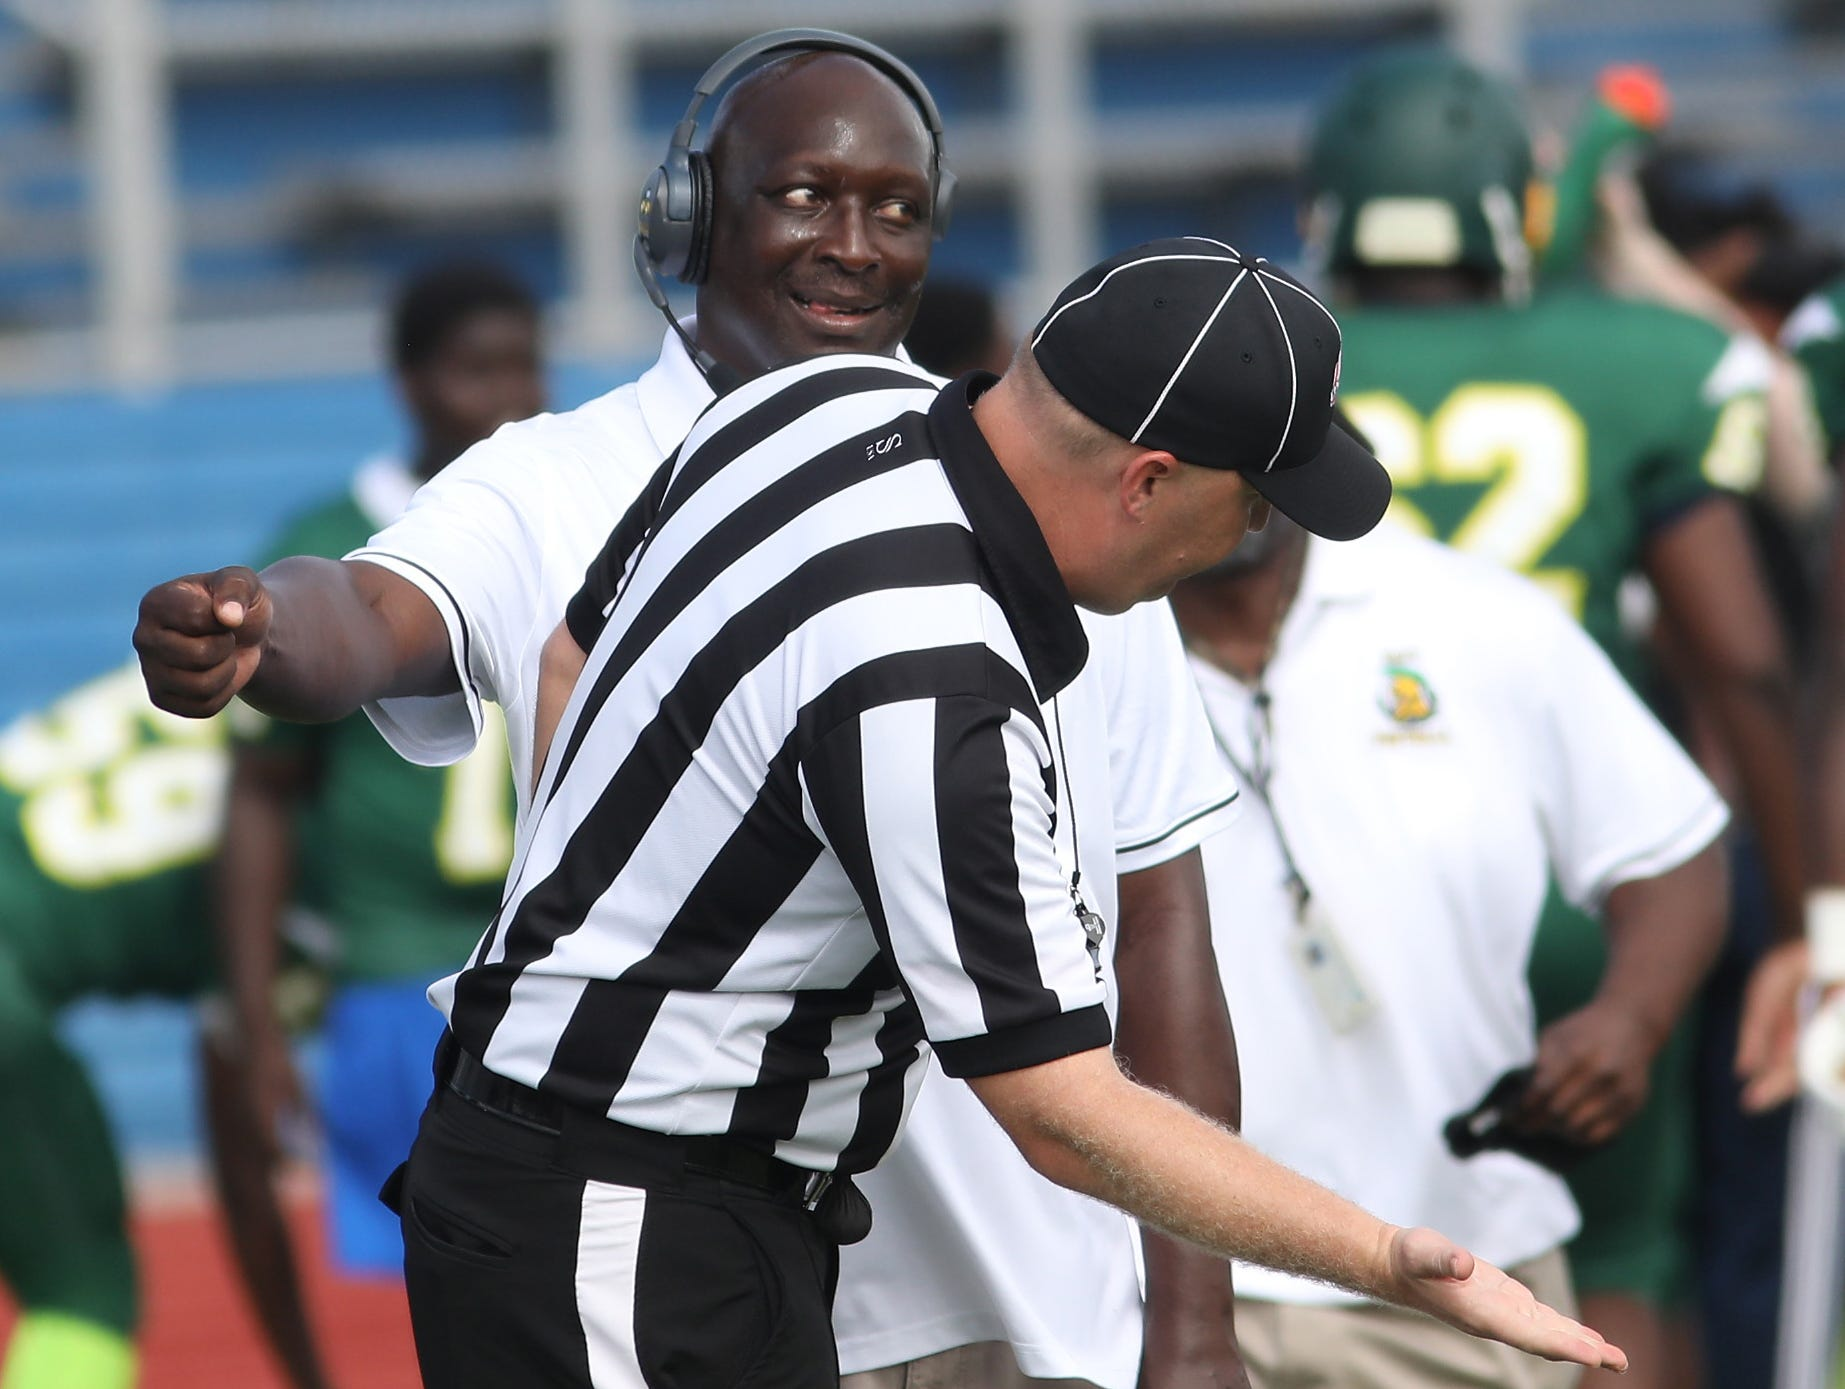 Taft head coach Jeff Cargile talks with the referee during the  Senators' 14-12 loss to Wyoming , Saturday, Sept. 1, 2018.